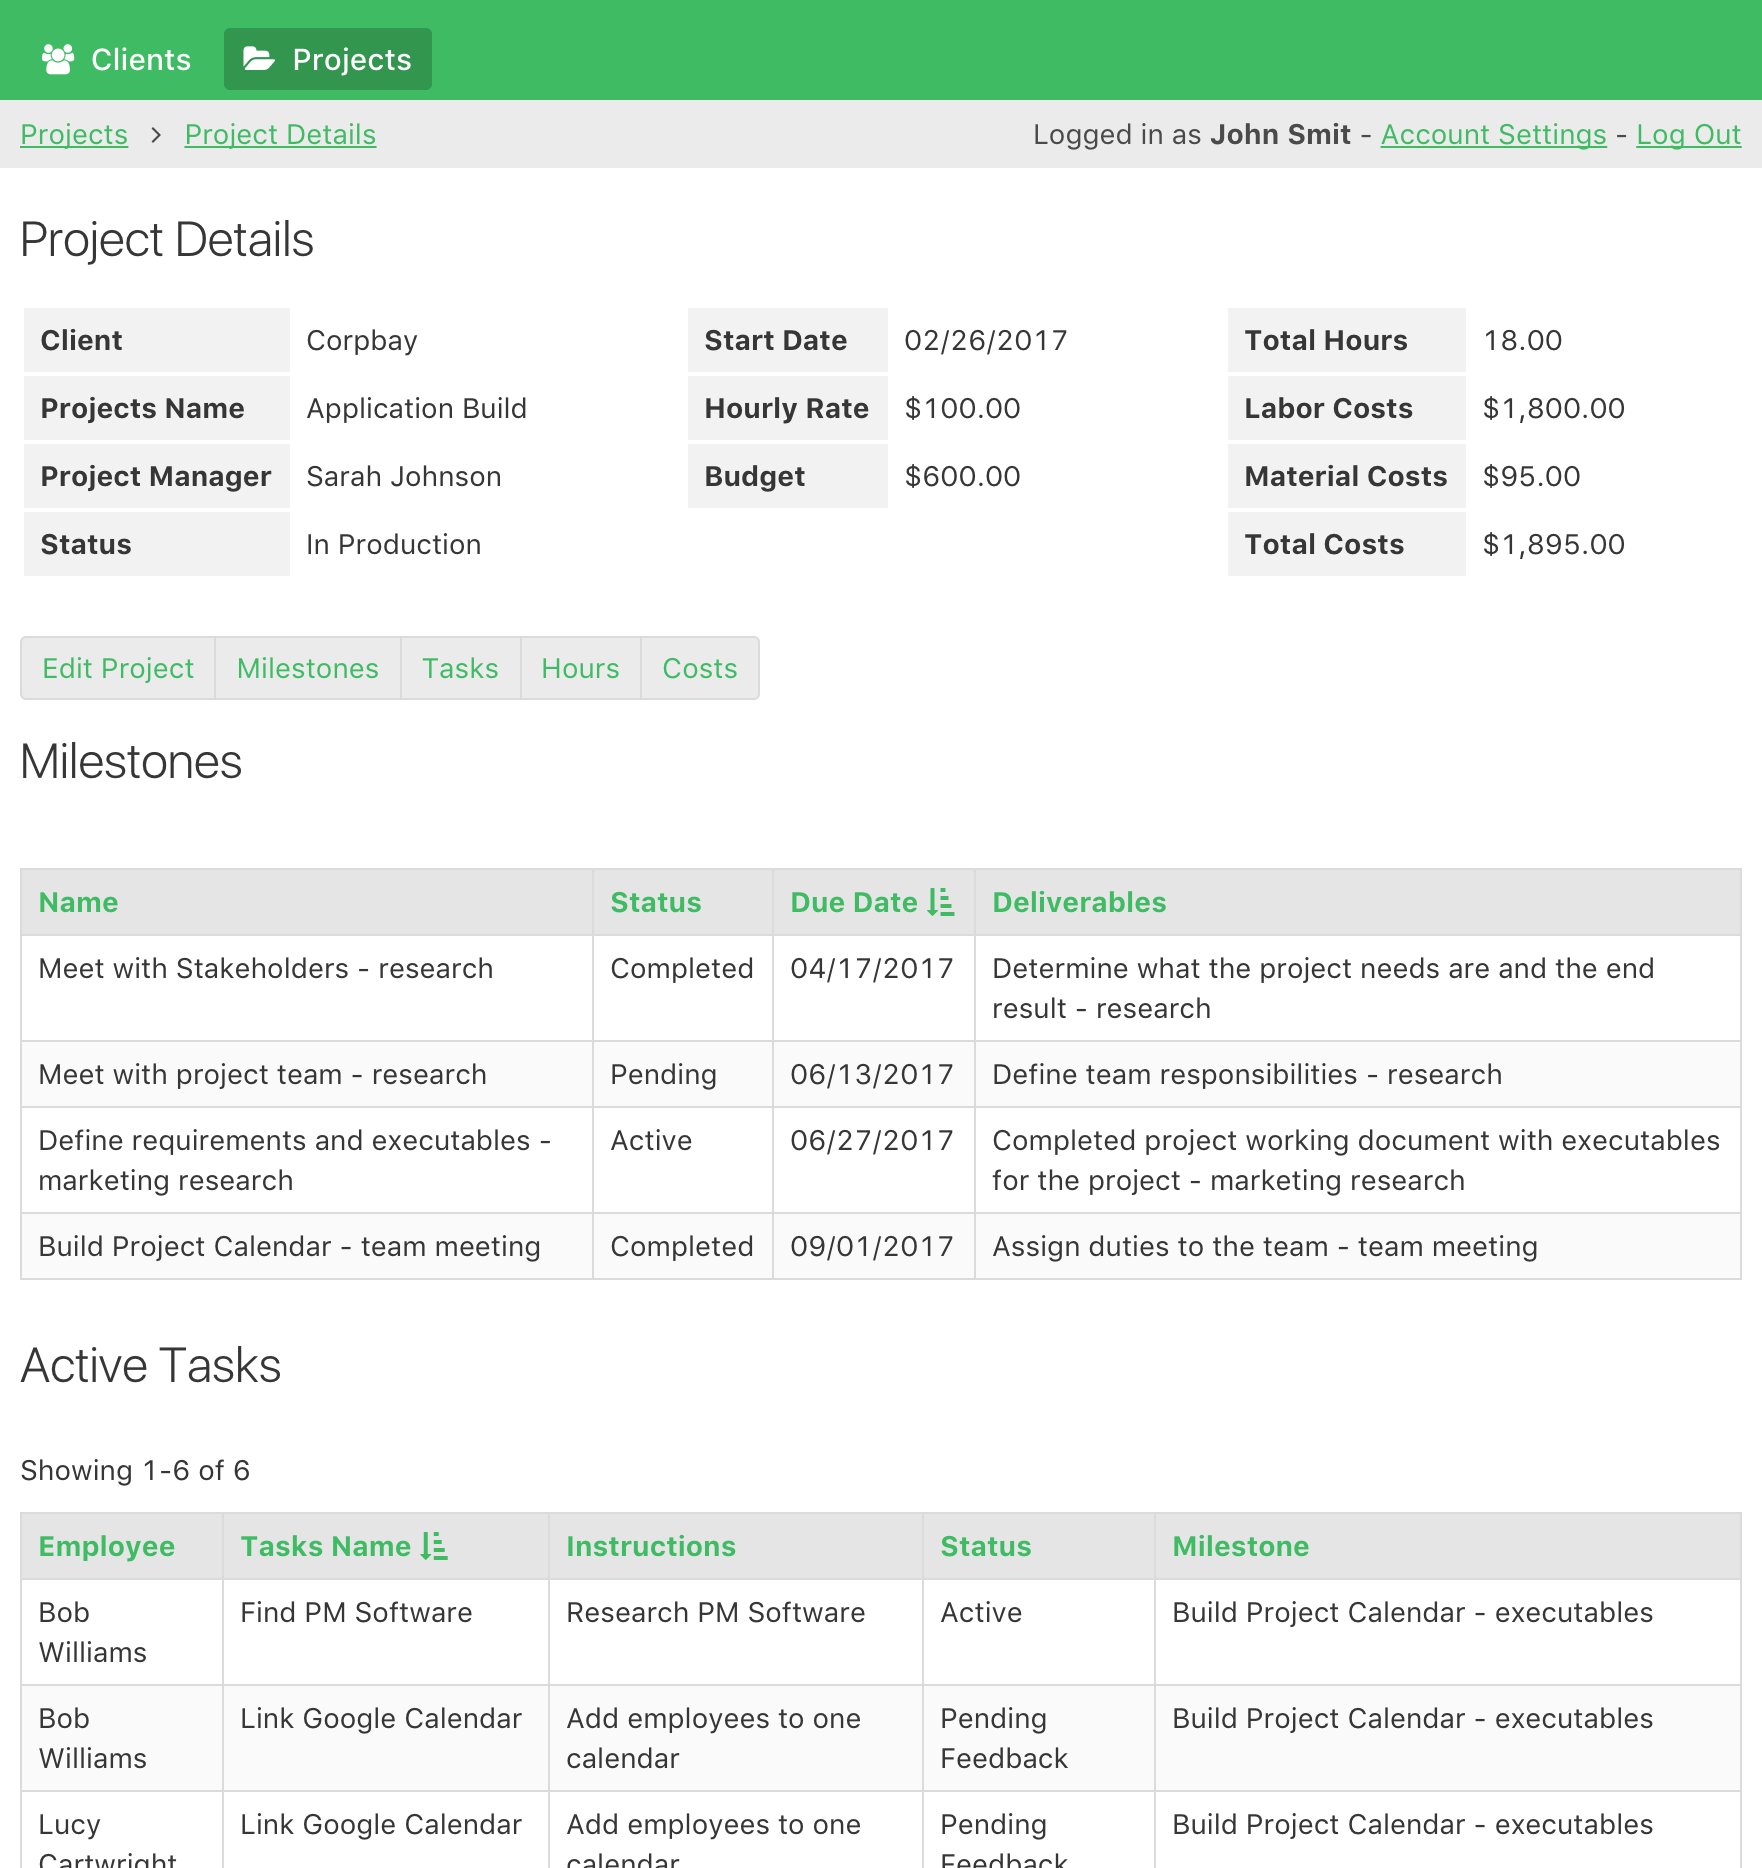 Project Managers log in and manage all projects assigned to them, including tasks, hours, milestones, costs, and more.